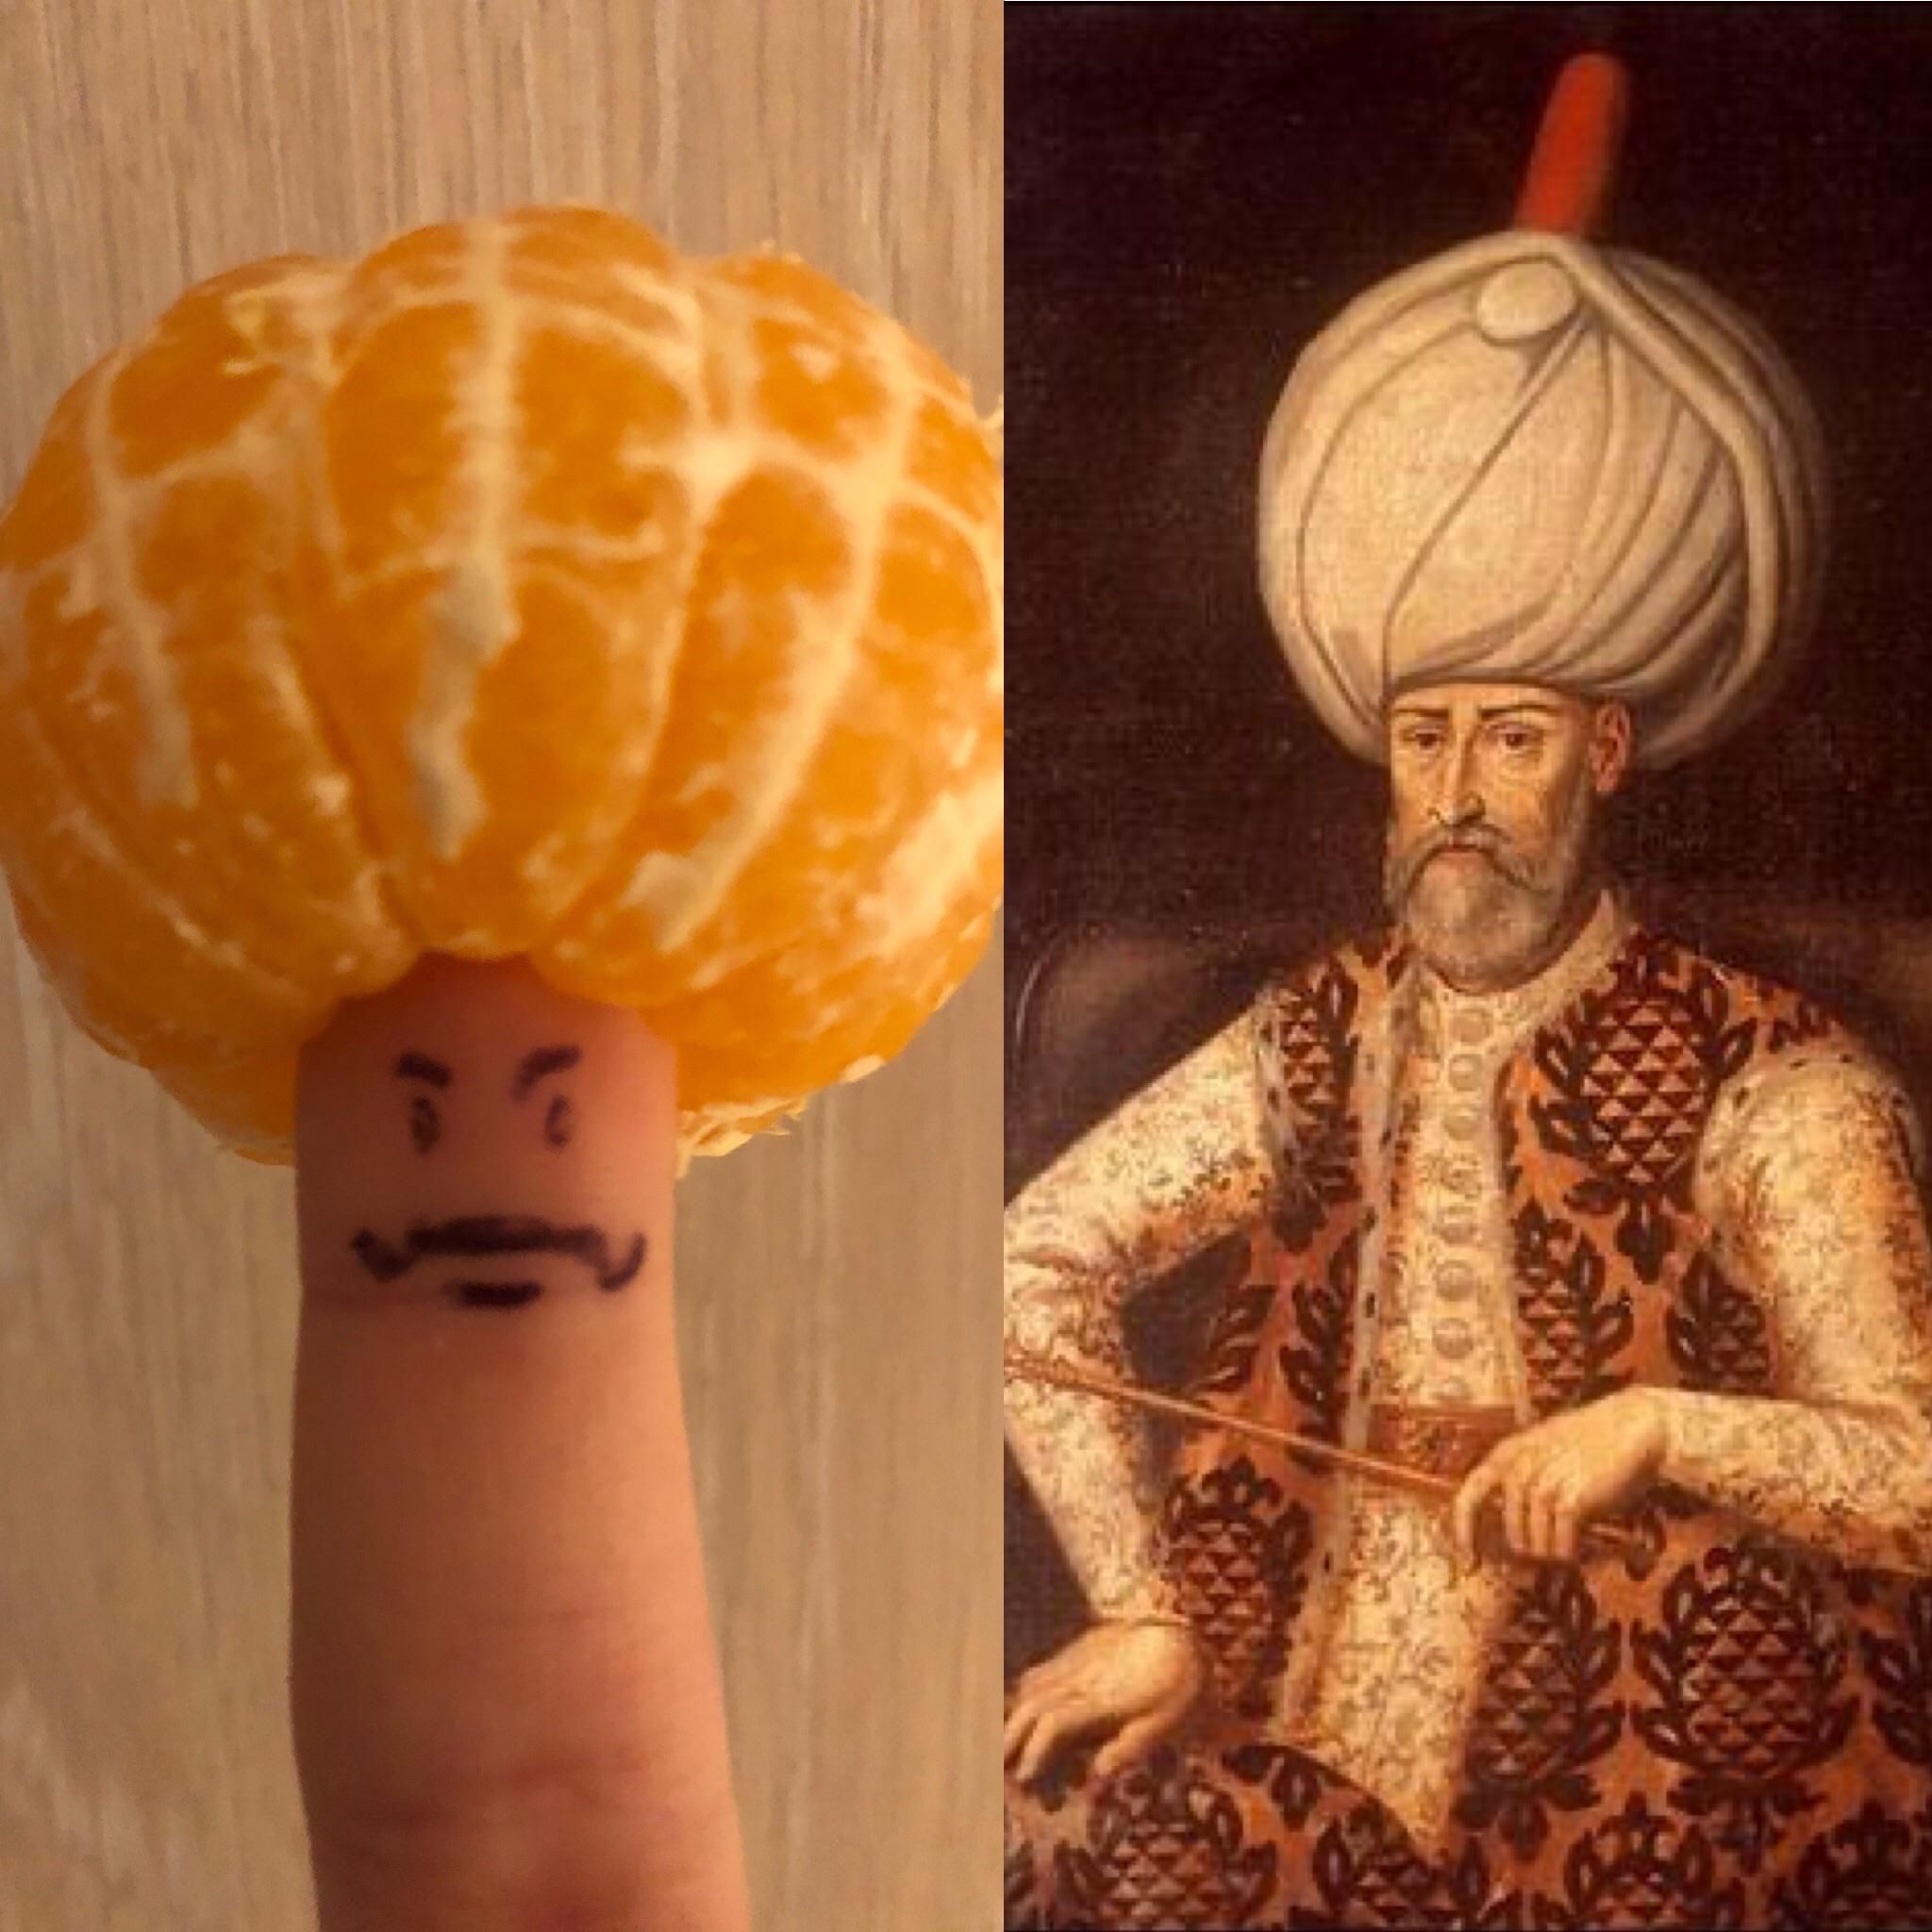 Accurate representation of Ottoman Sultan Suleyman 1